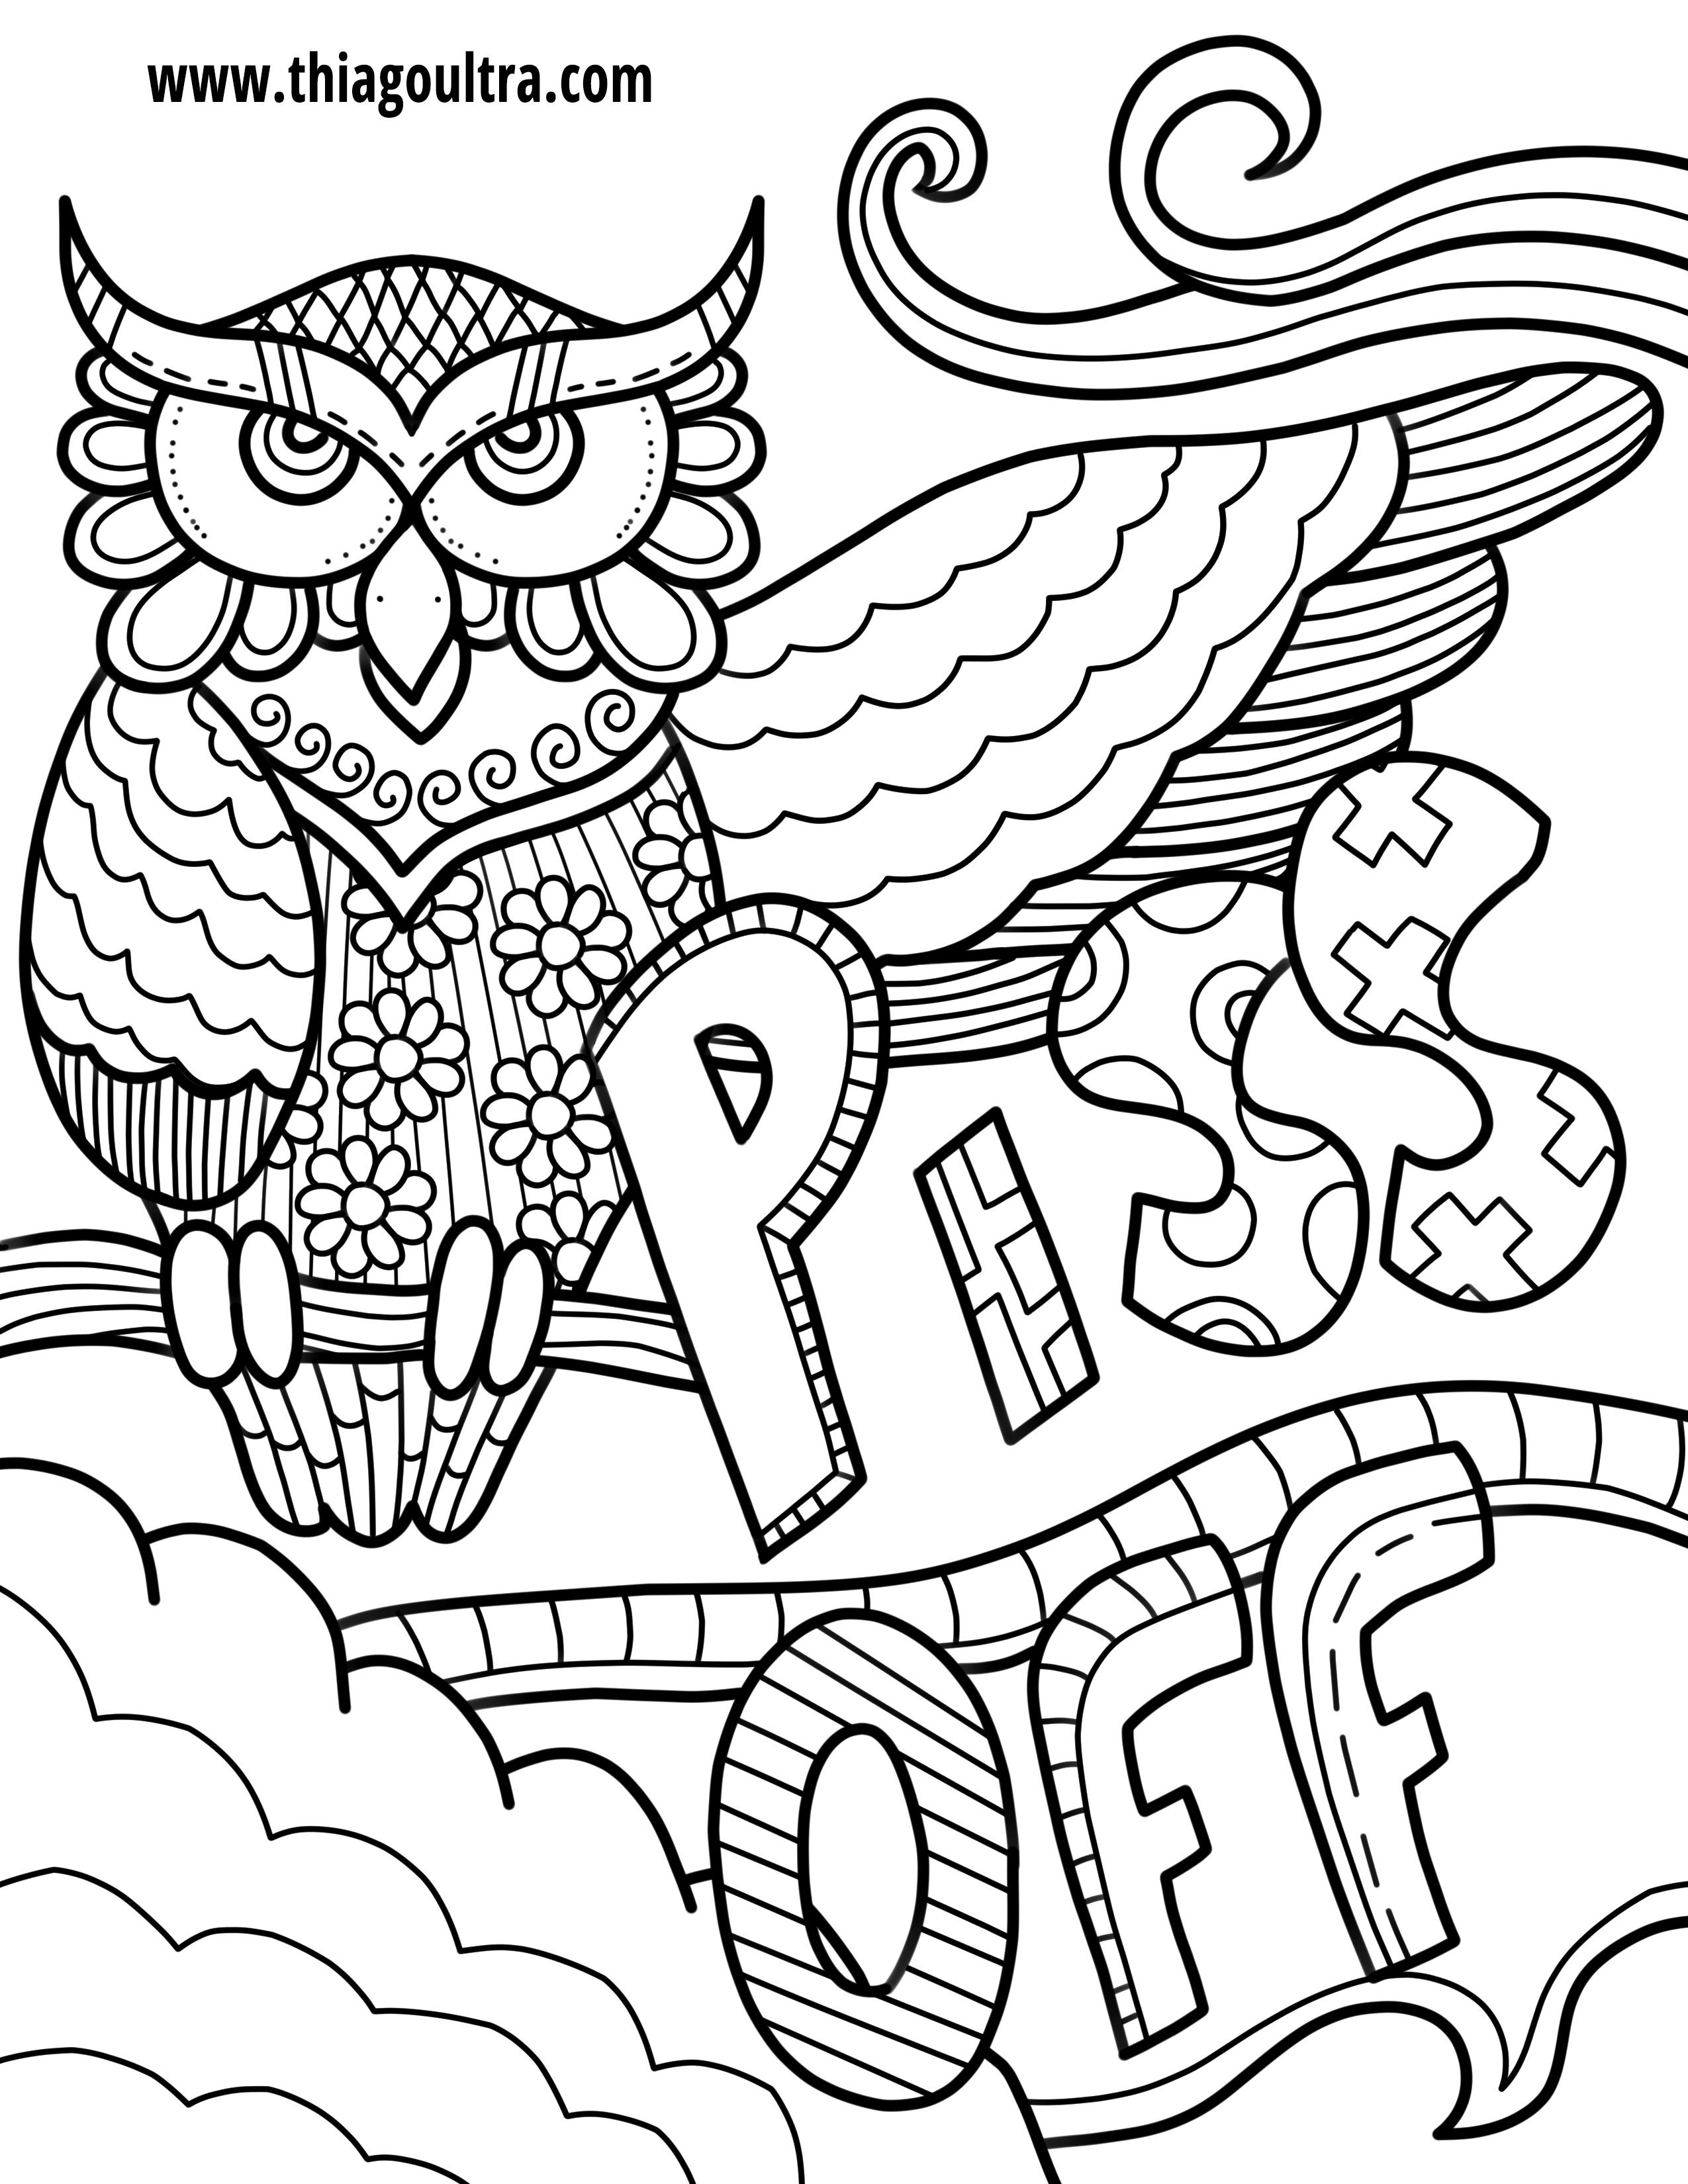 Unique Free Printable Coloring Pages For Adults Only Swear Words - Free Printable Pictures